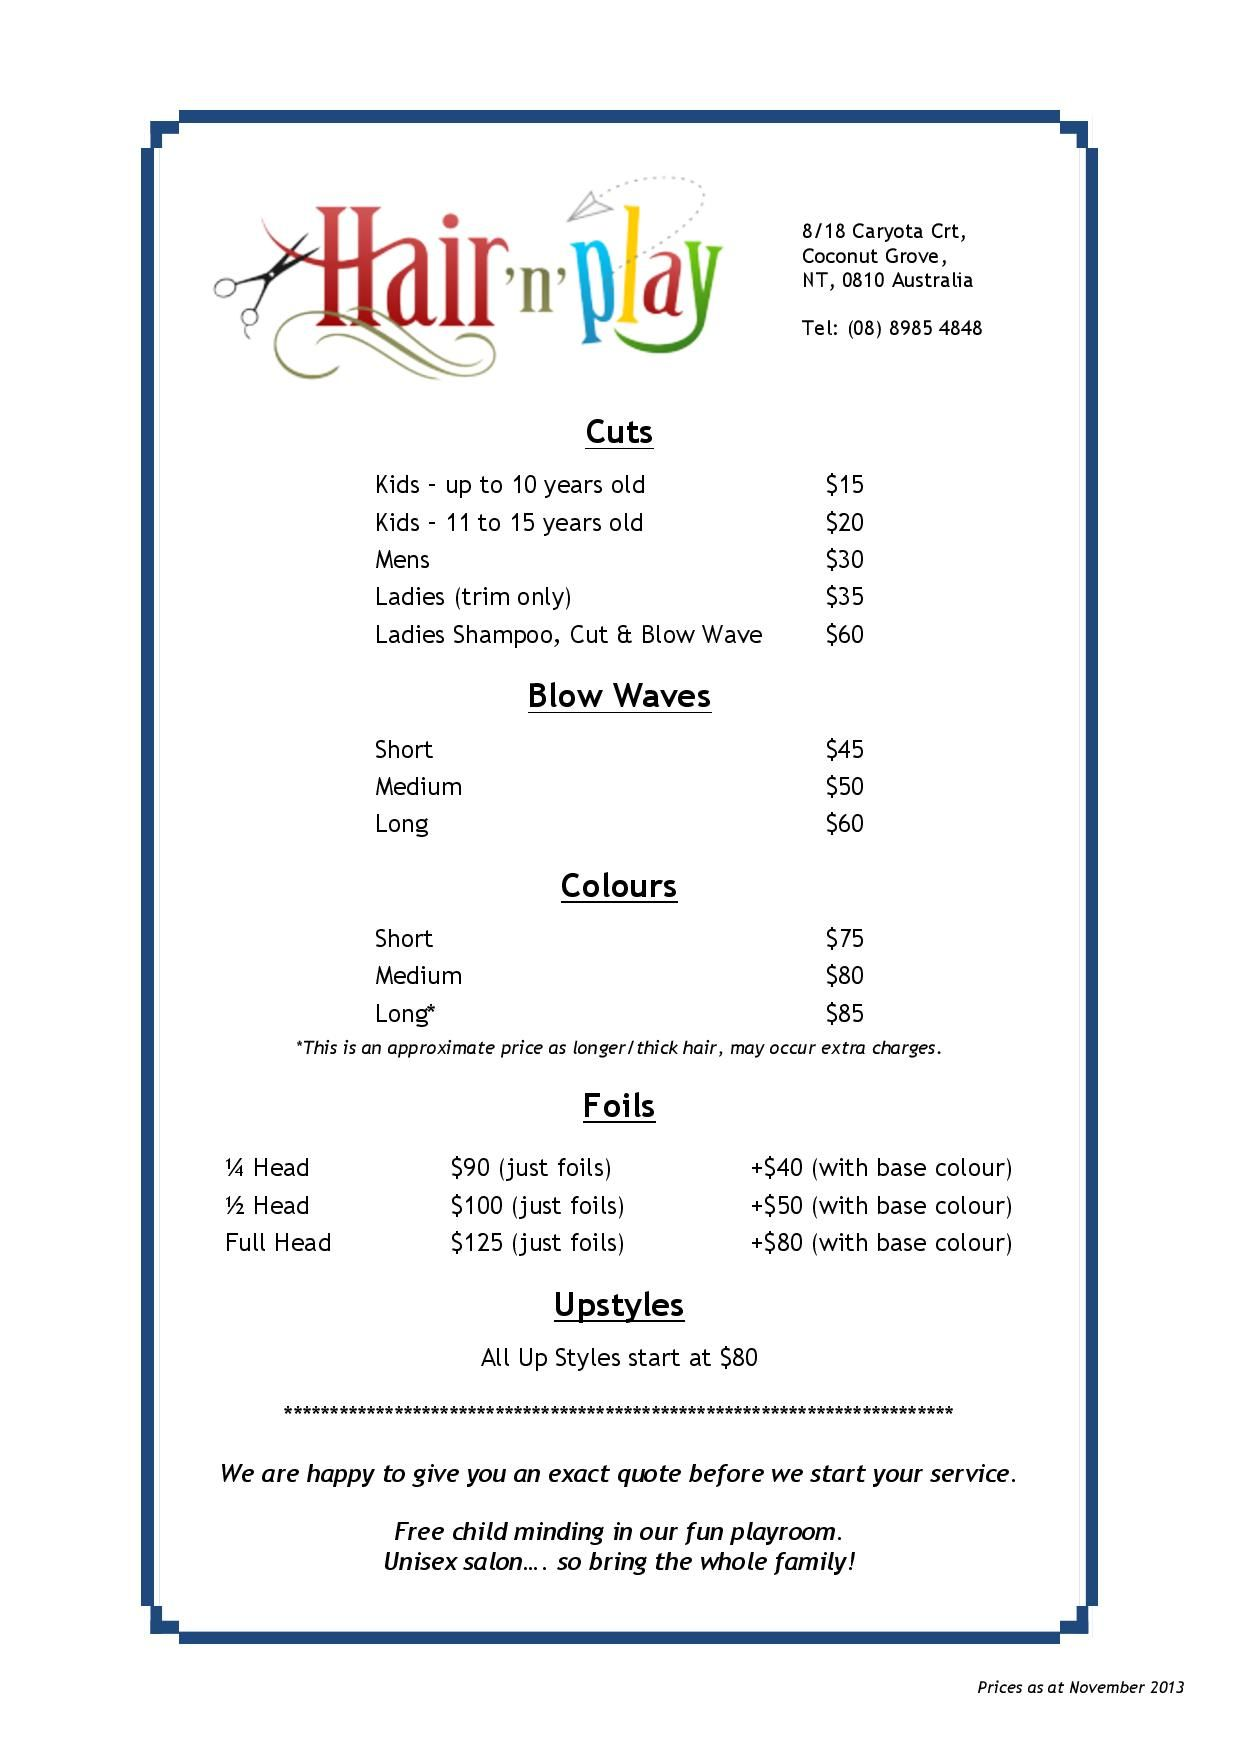 This is our current prices list for Hair Services. Please